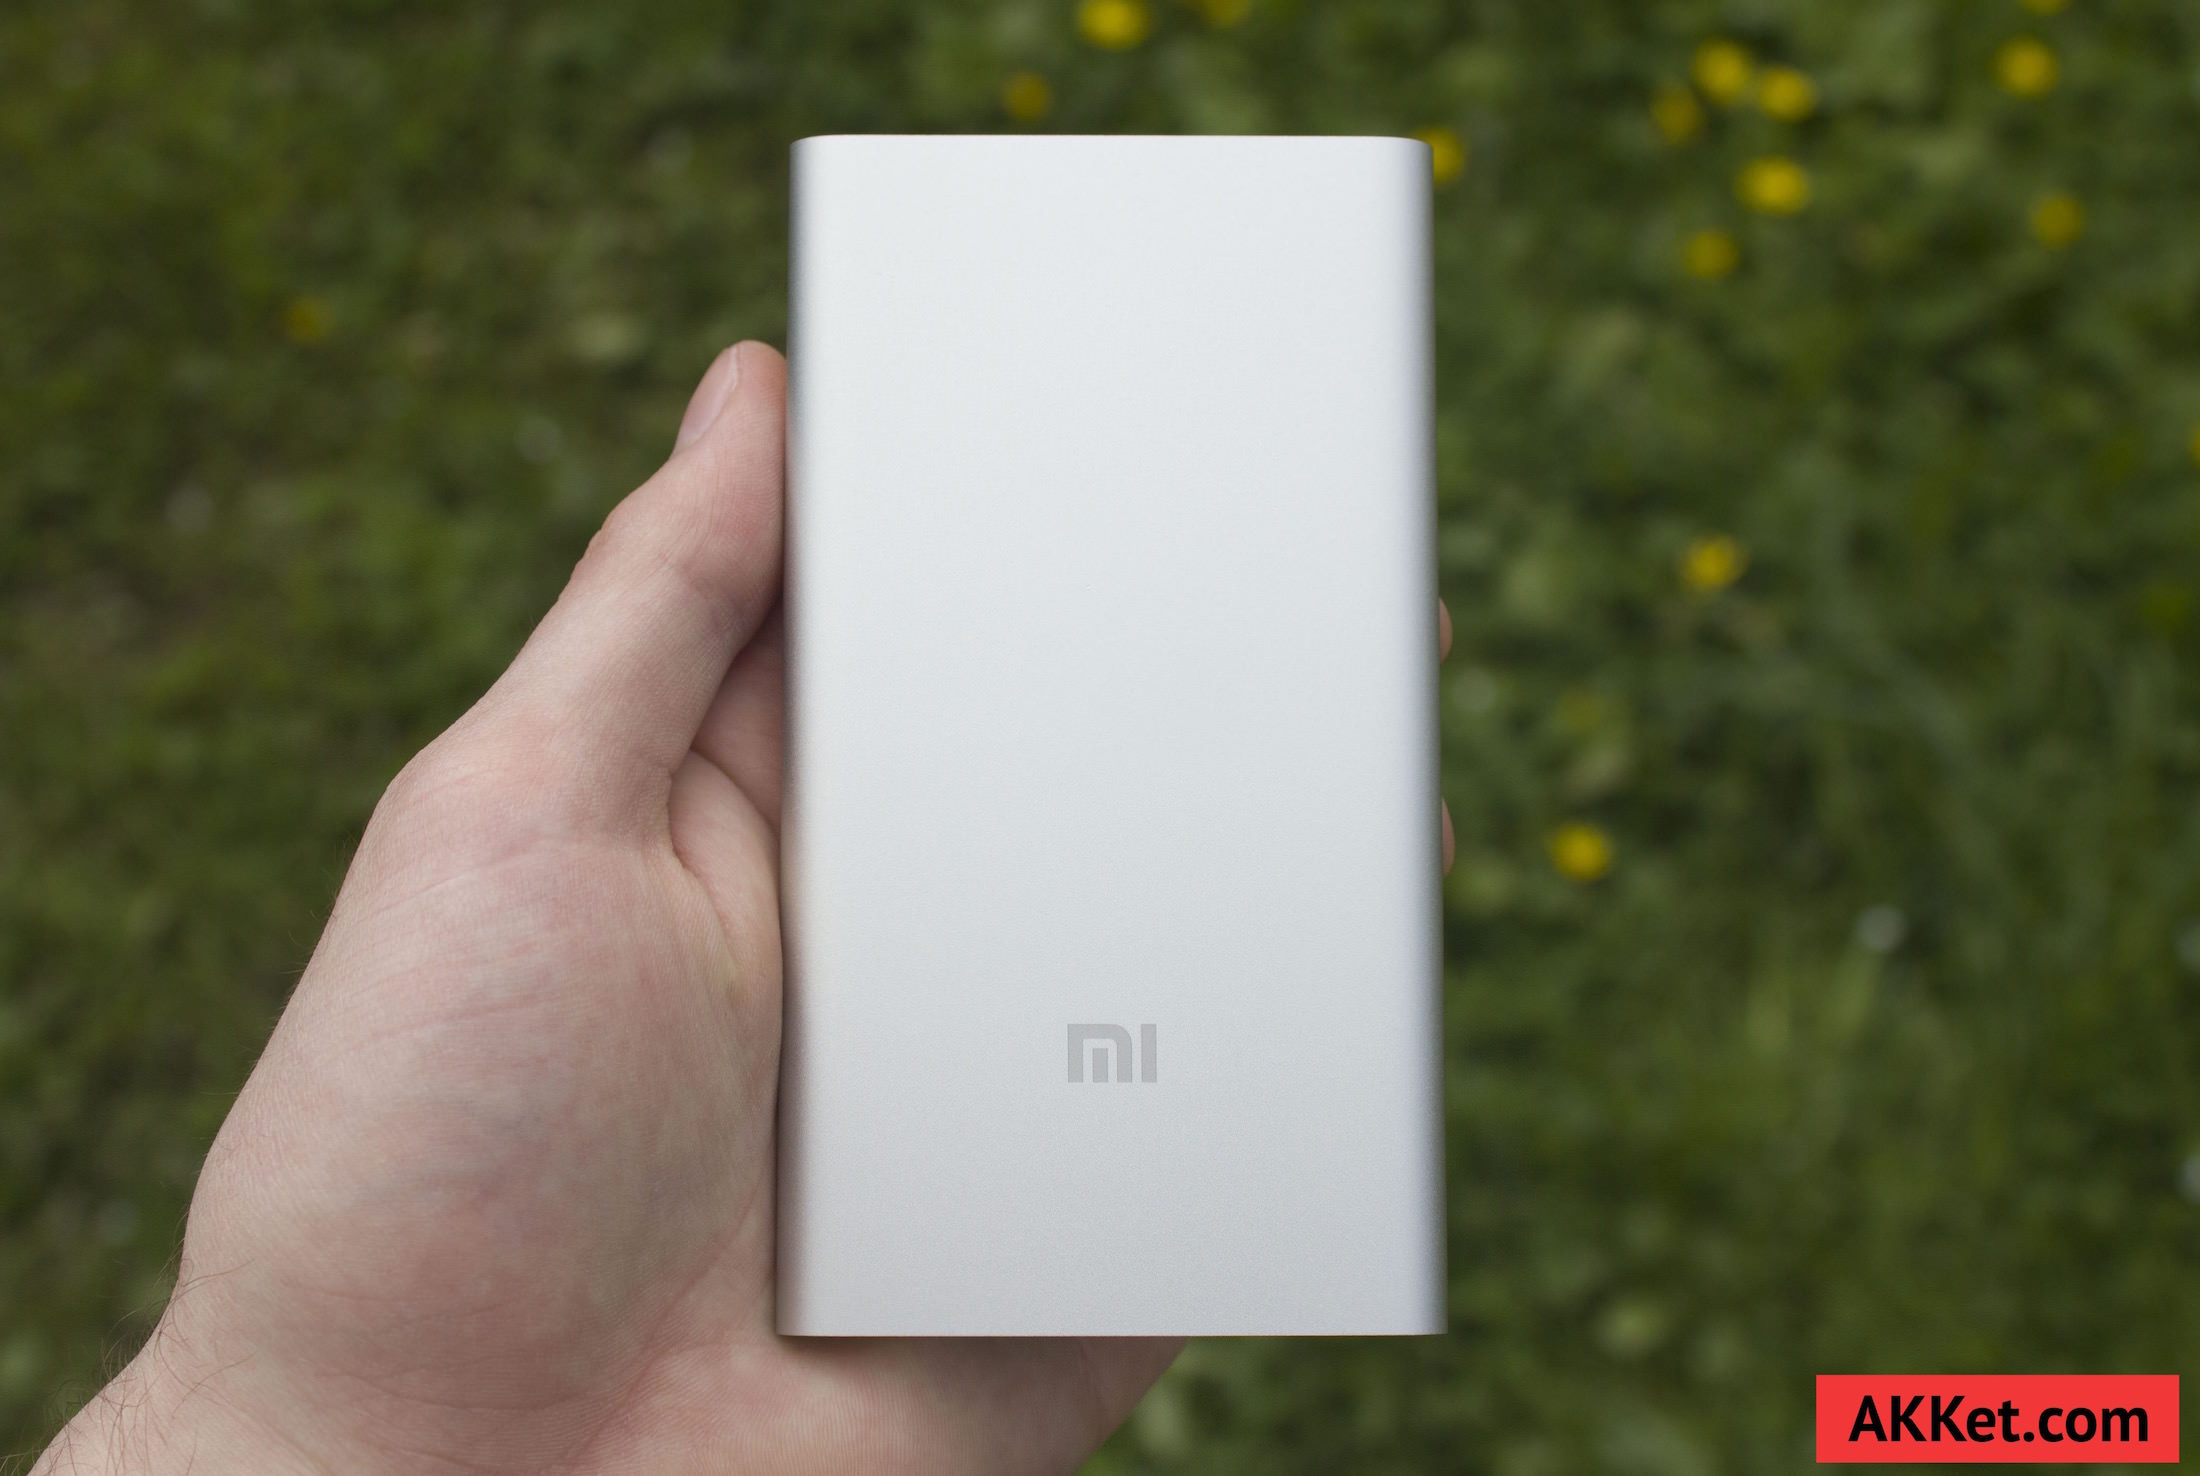 Xiaomi Mi Power Bank 5000 mAh Review iPhone 8